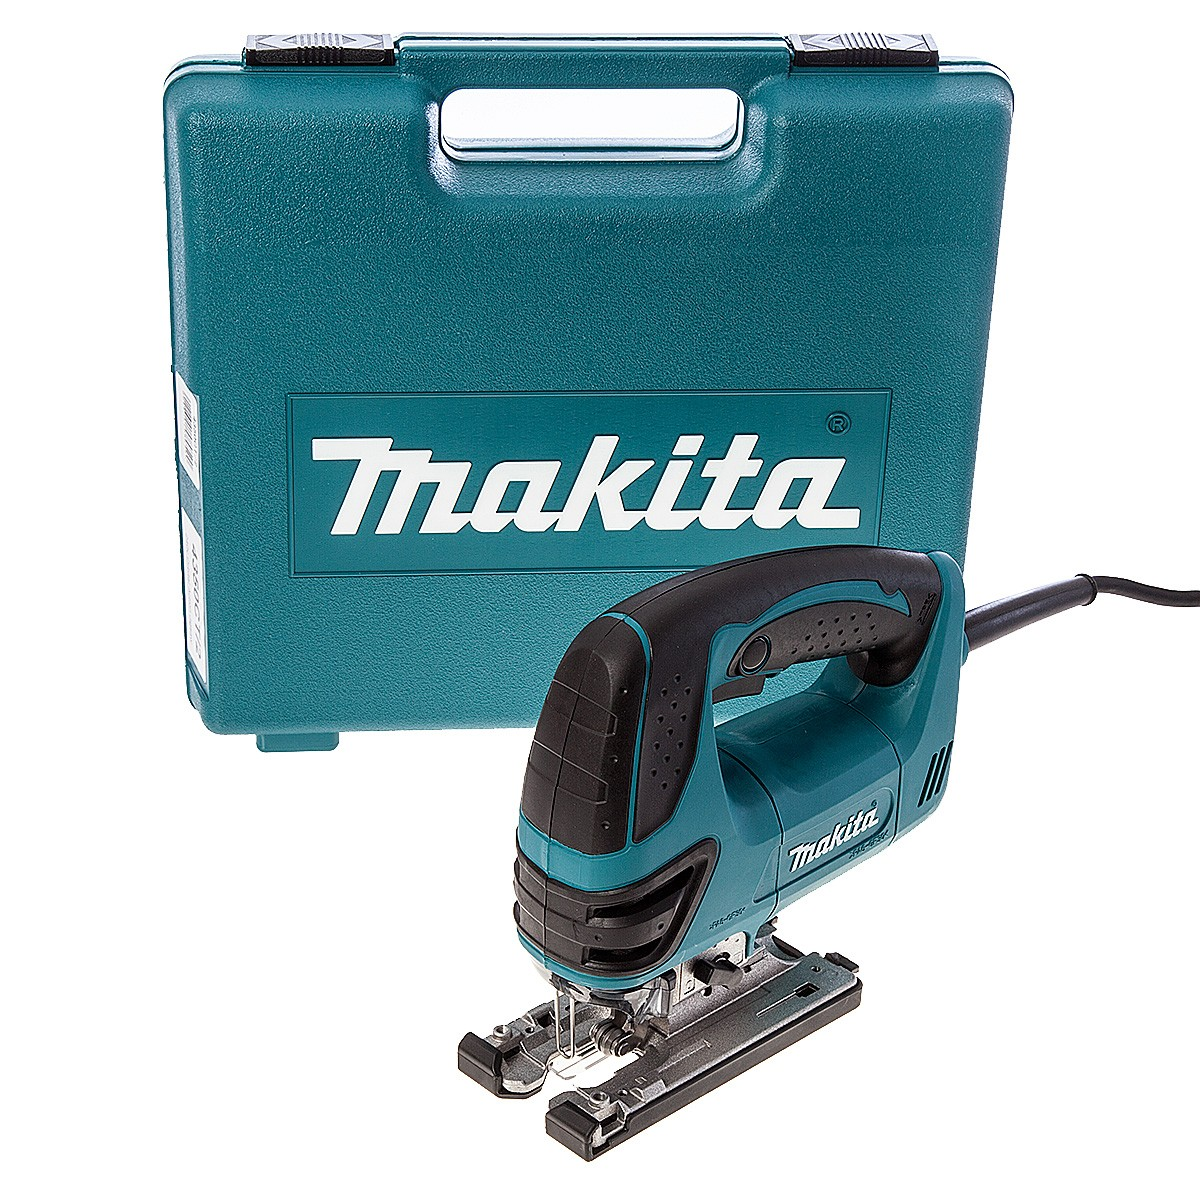 Makita 4350fct orbital action top handle jigsaw in carry case makita 4350fct orbital action top handle jigsaw in carry case powertool world keyboard keysfo Image collections